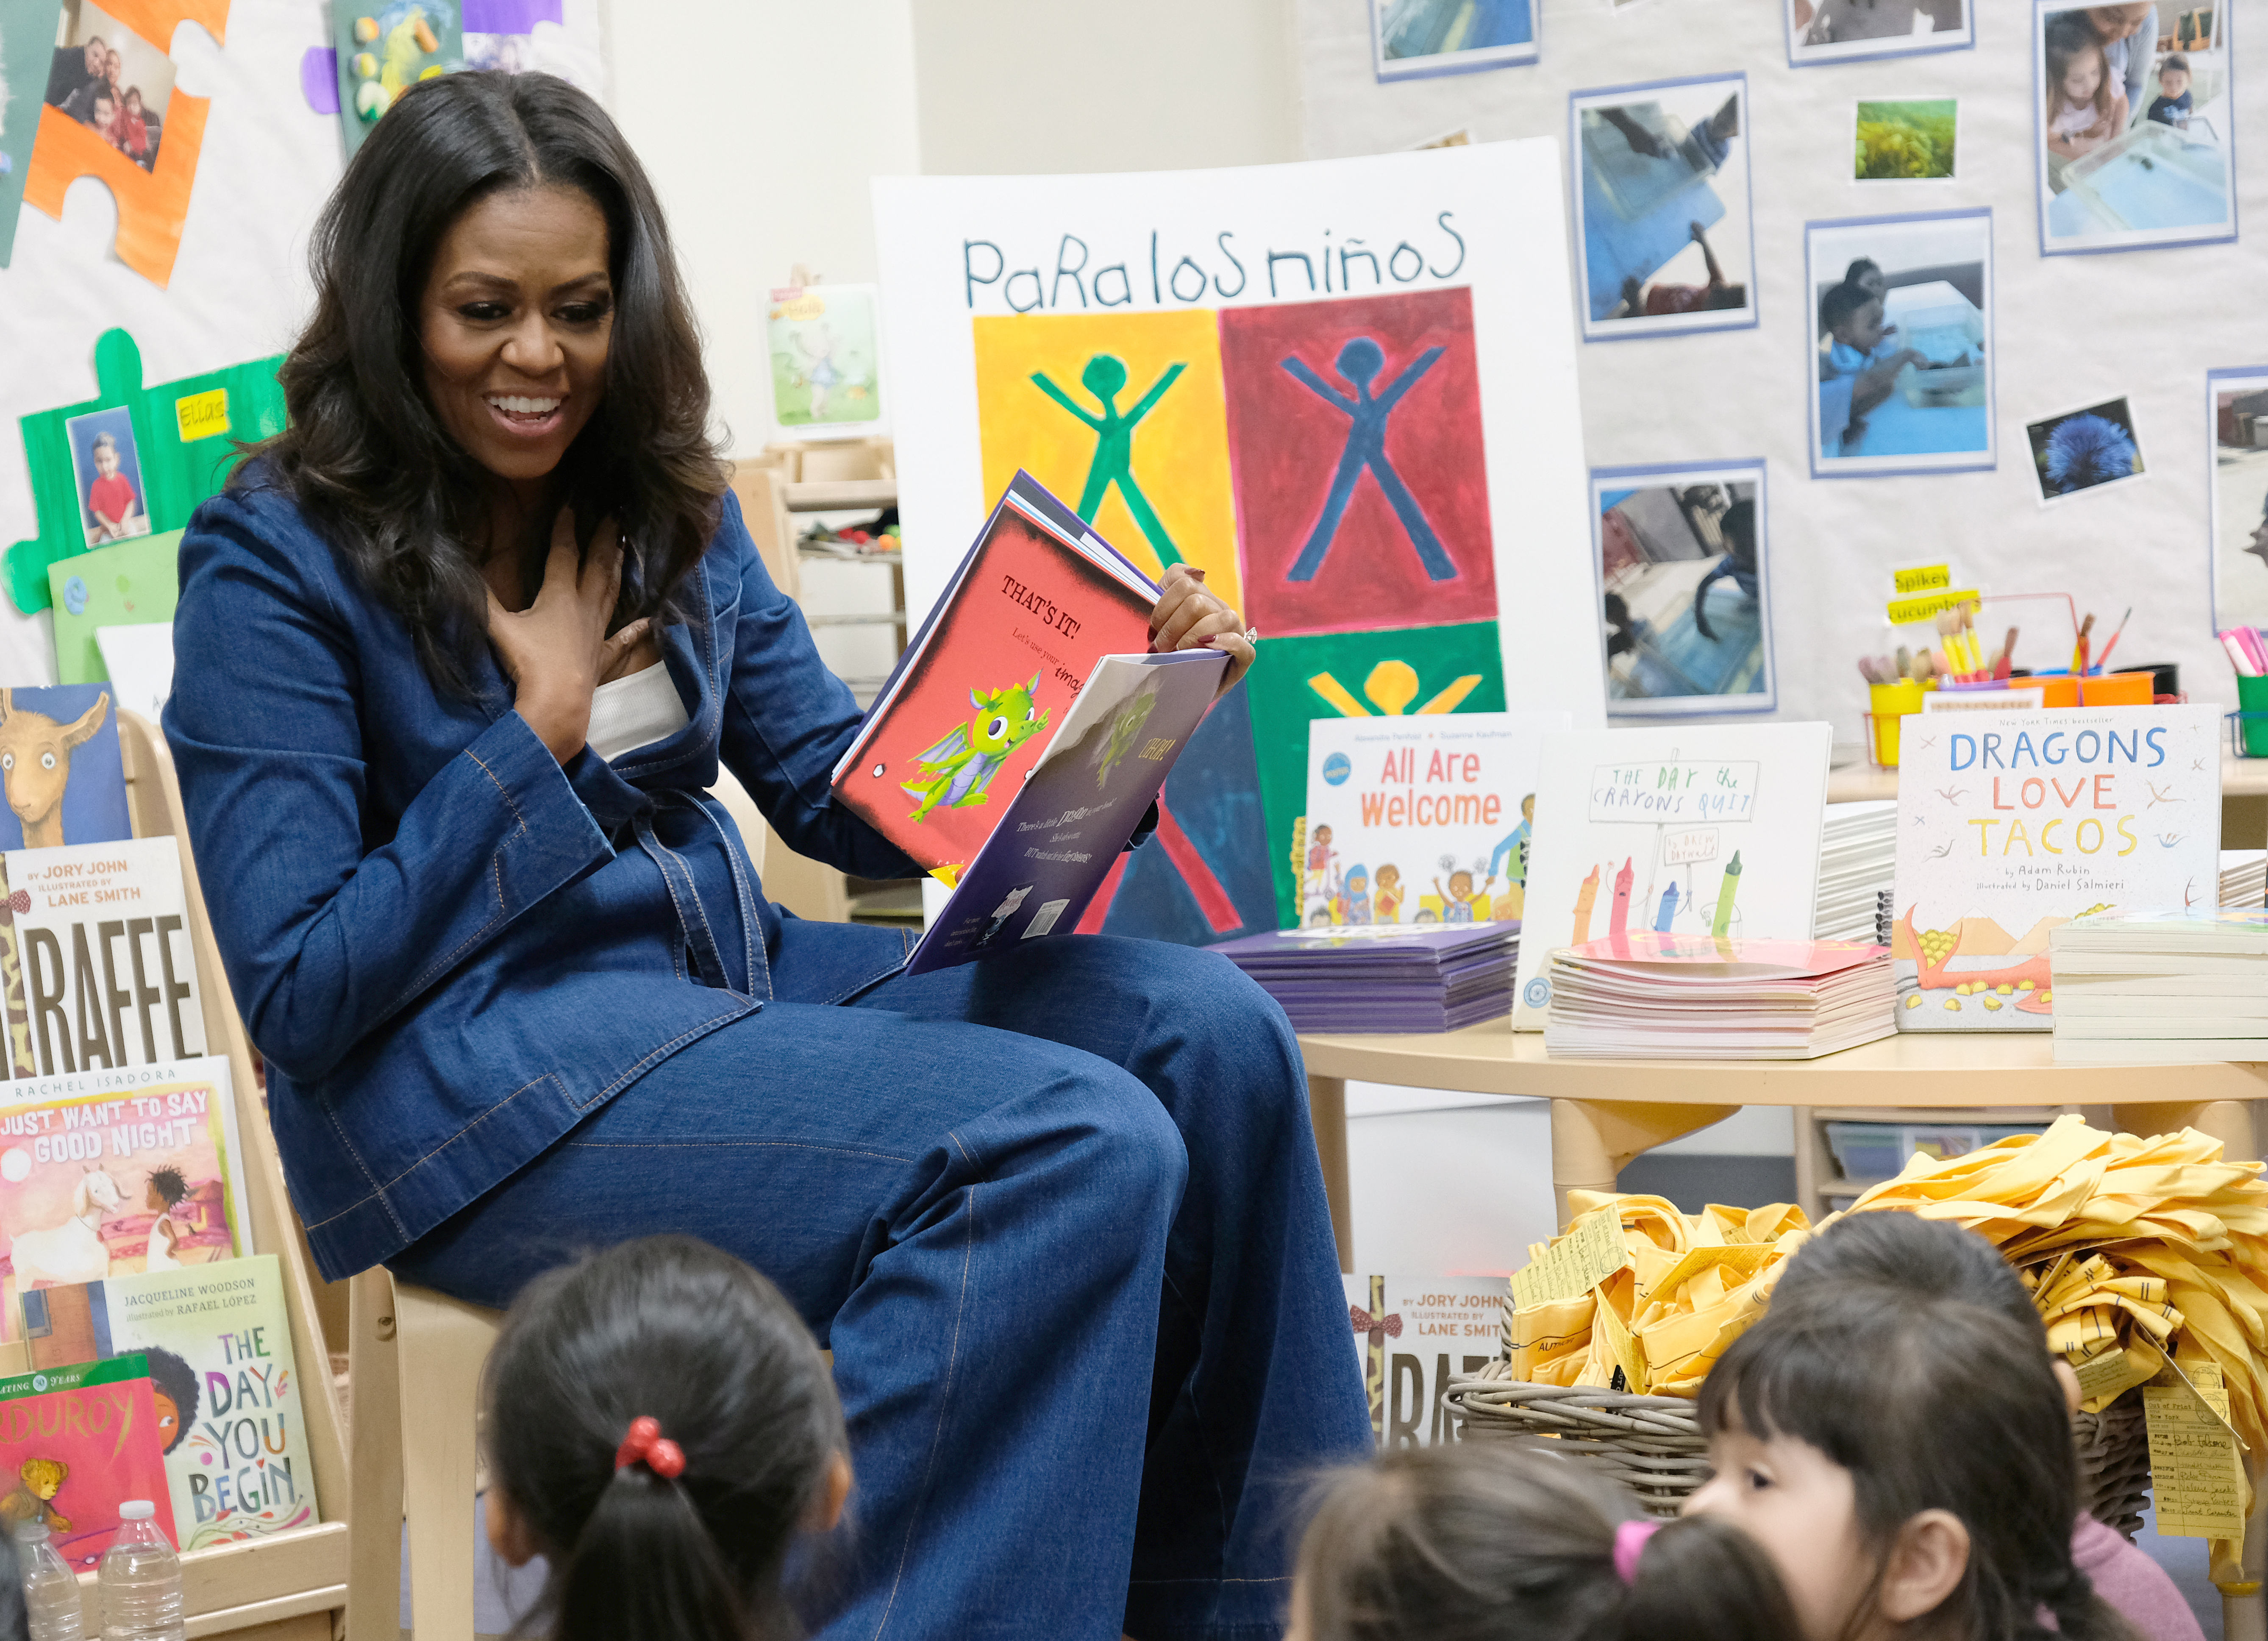 Michelle Obama will have yet another school named after her, an elementary school in Northern California will now be called Michelle Obama Elementary School.